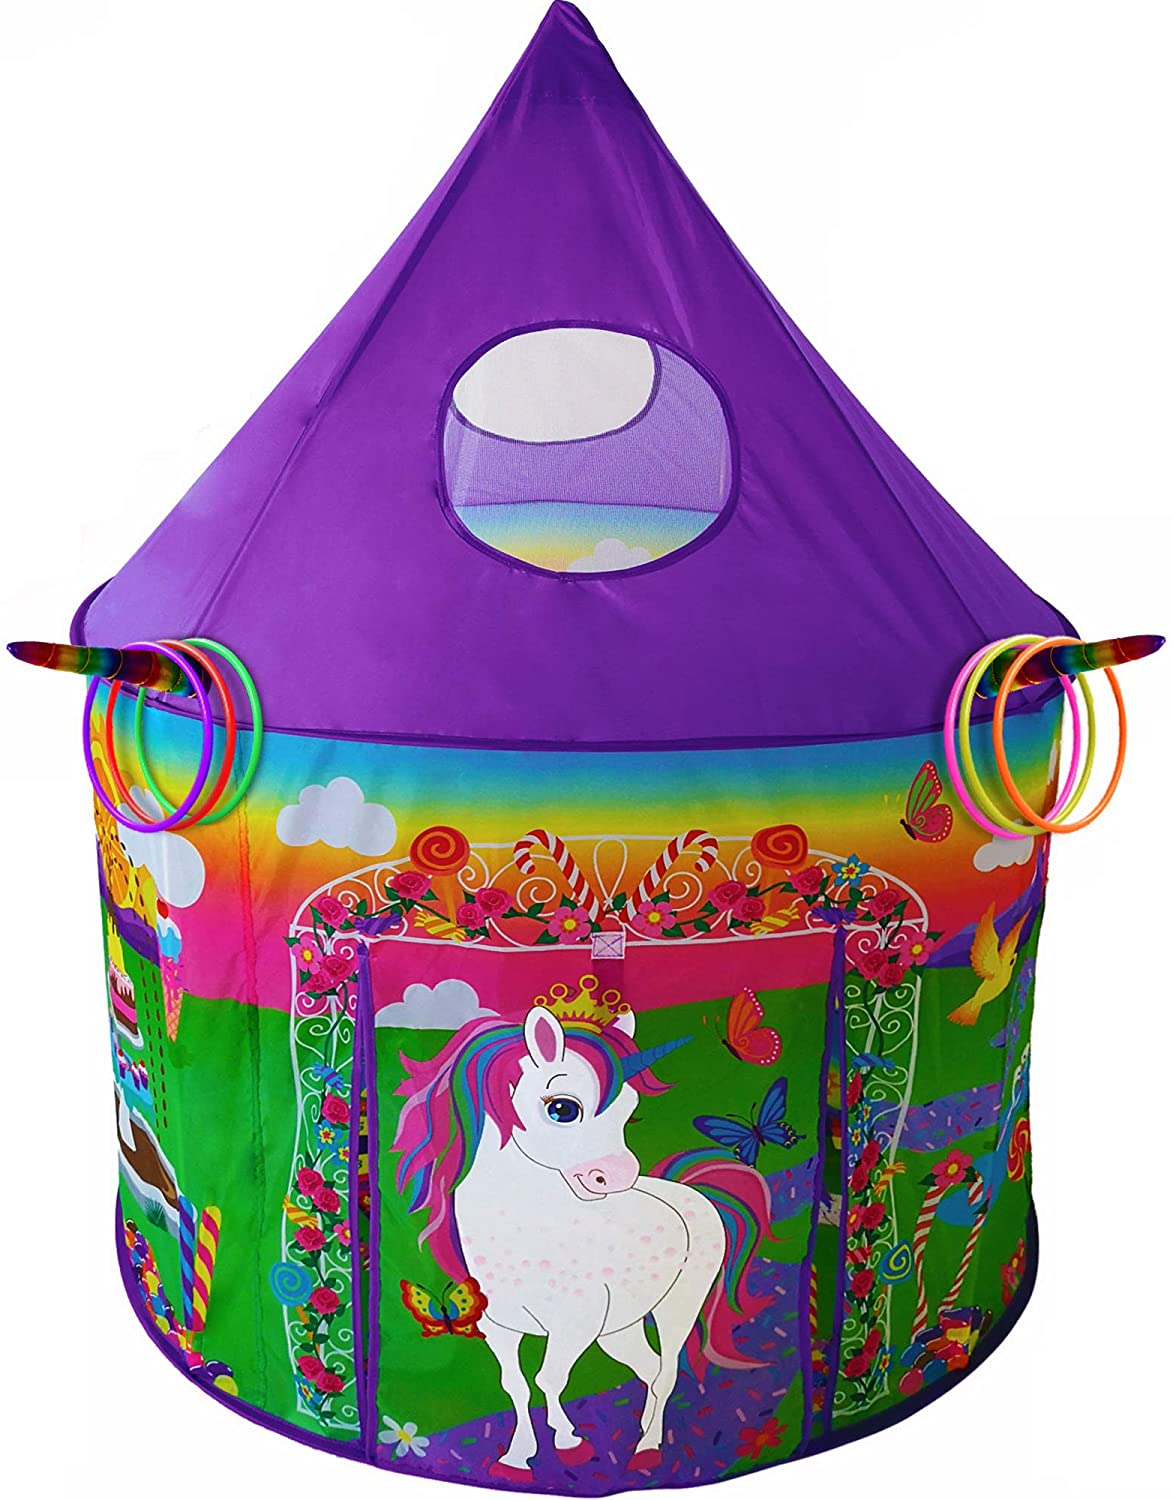 Tent with Unicorn Ring